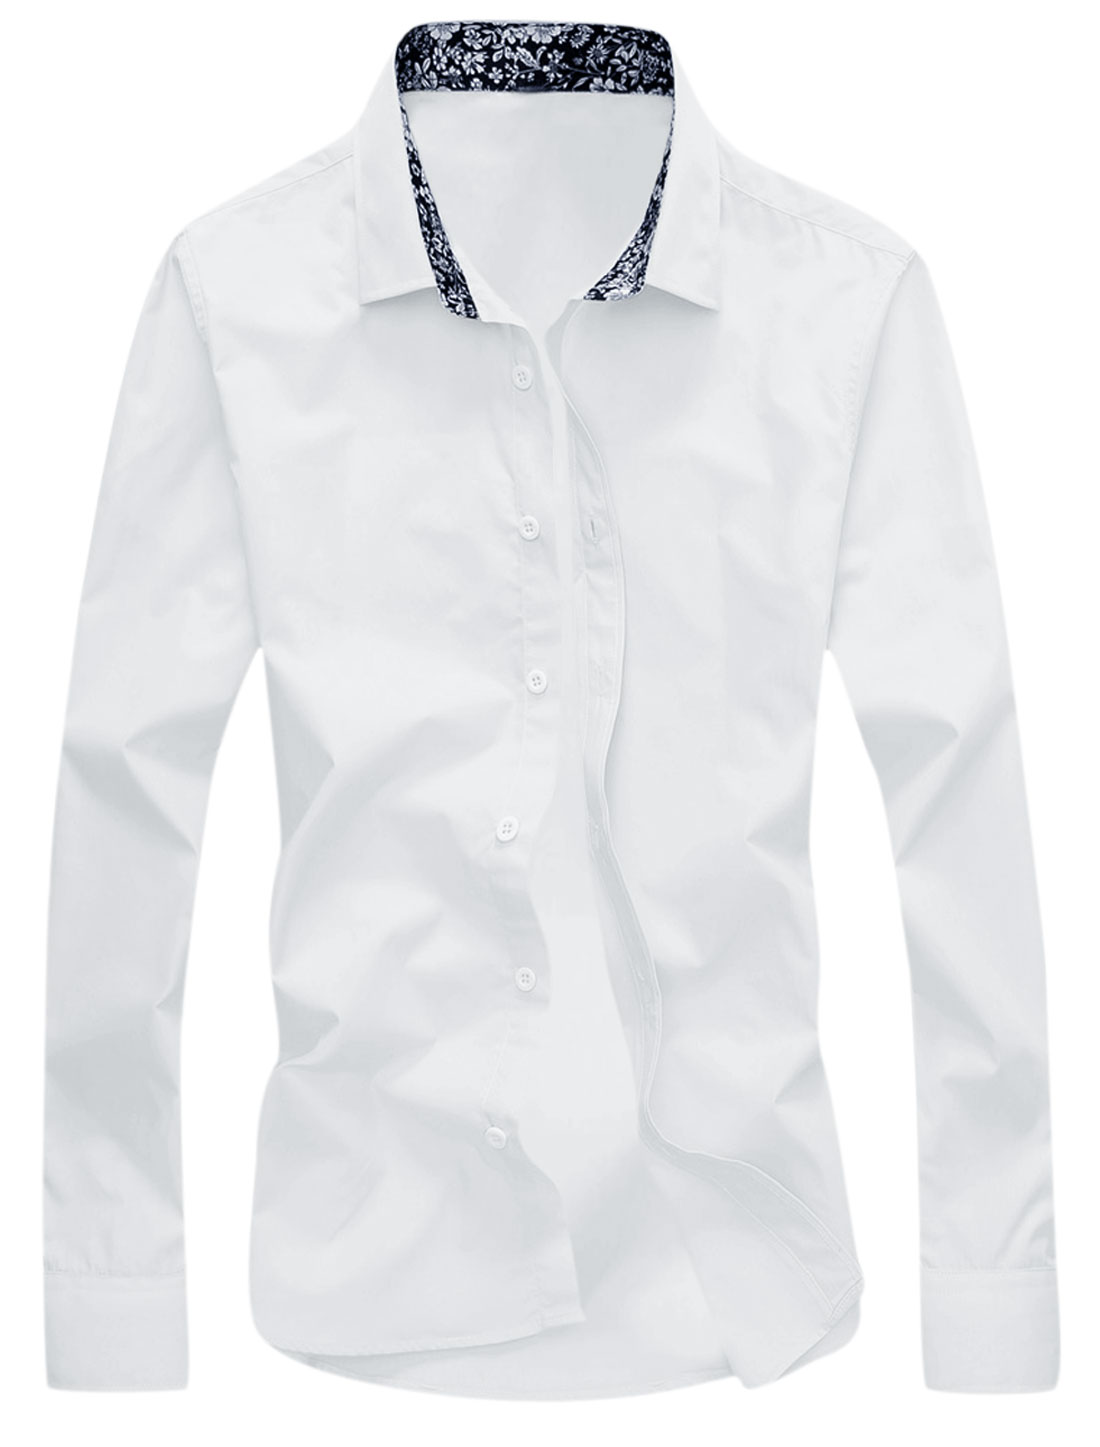 Men Point Collar Long Sleeves Button Closure Casual Shirt White M